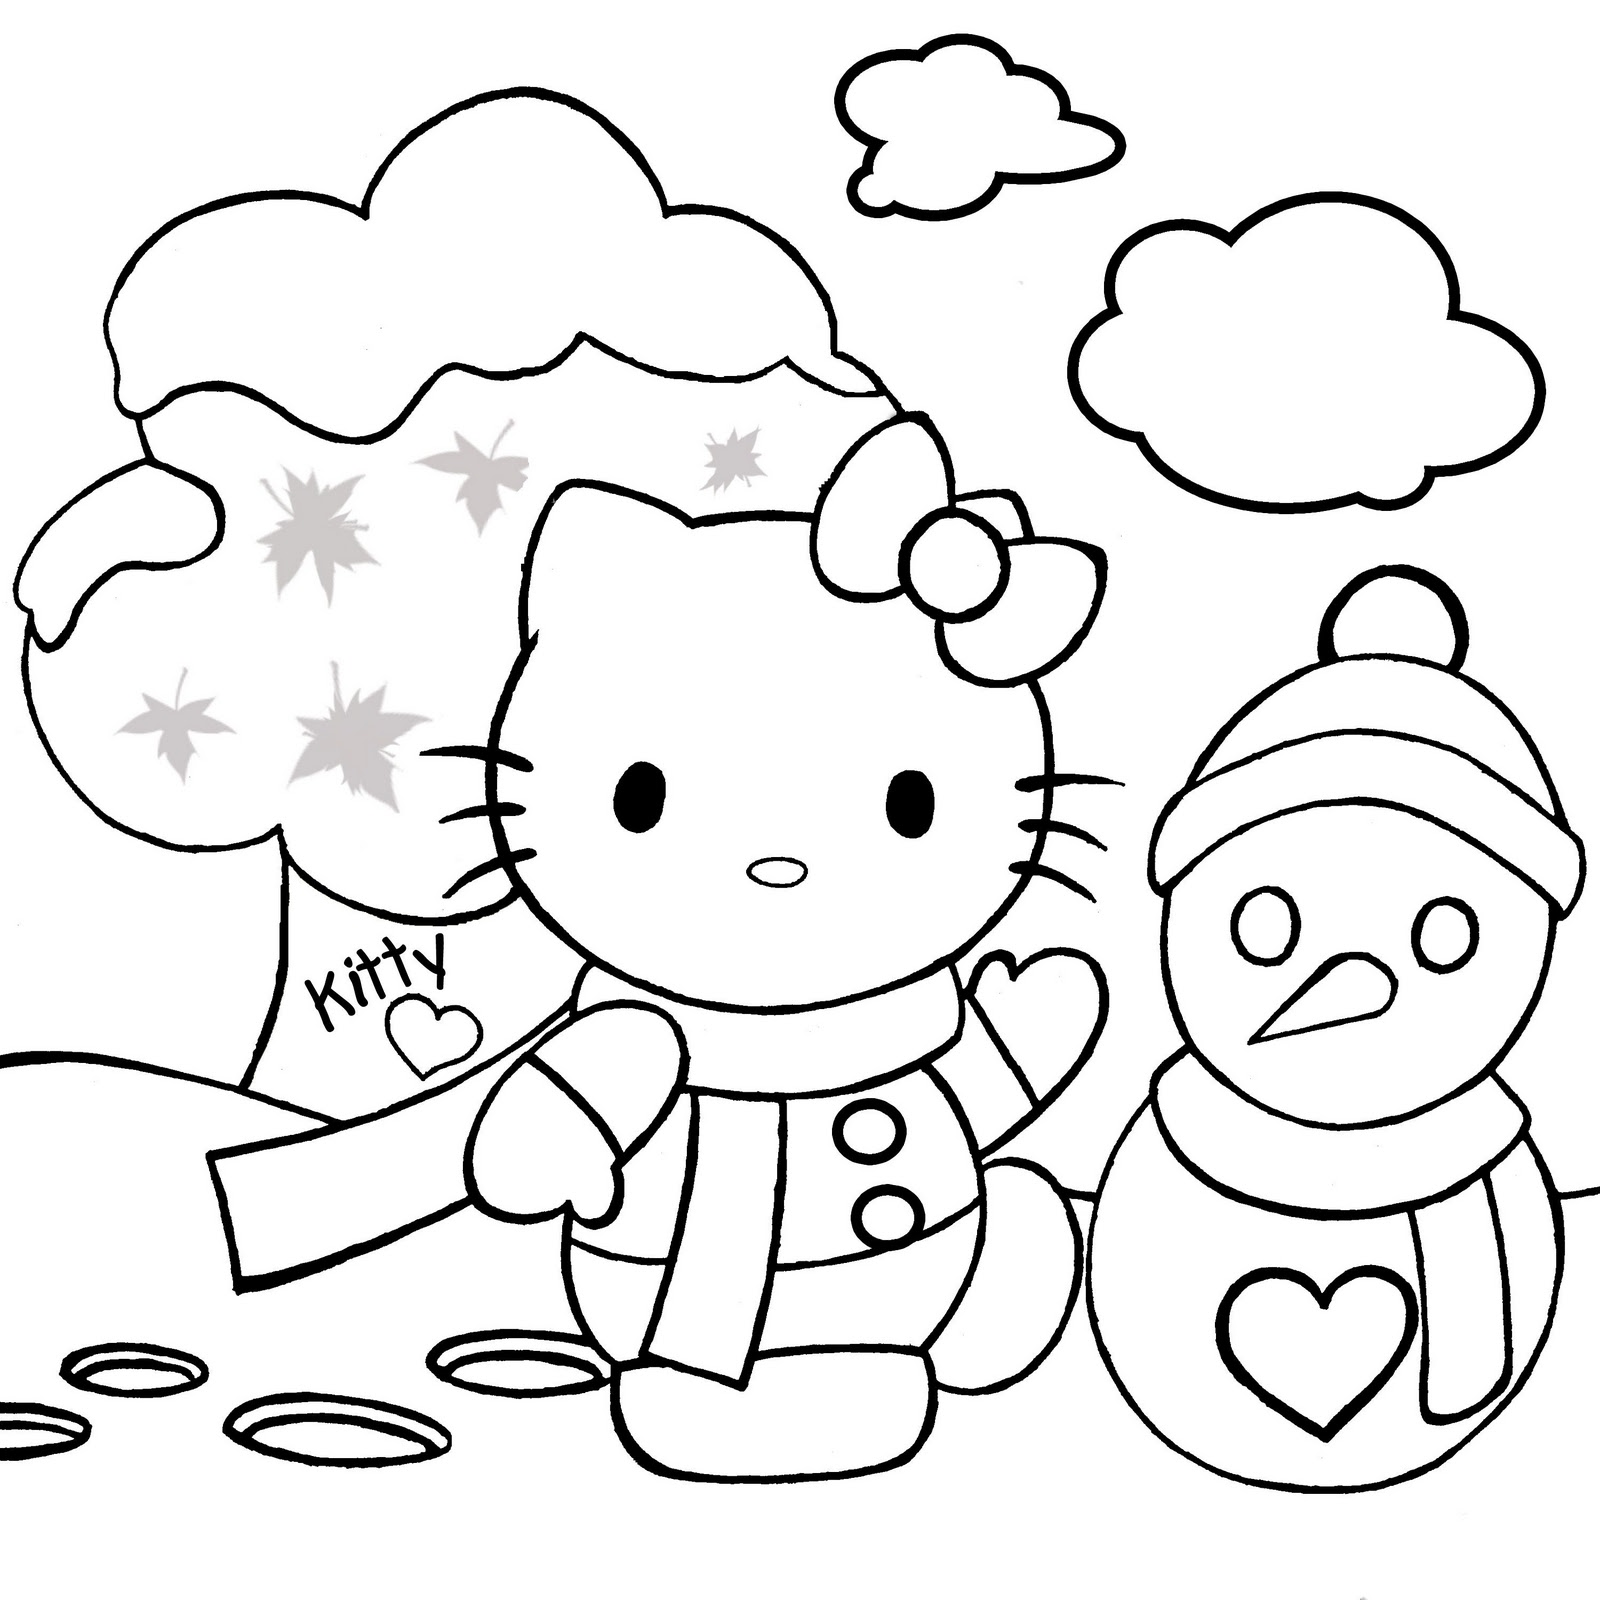 Christmas Coloring Pages (7) - Coloring Kids